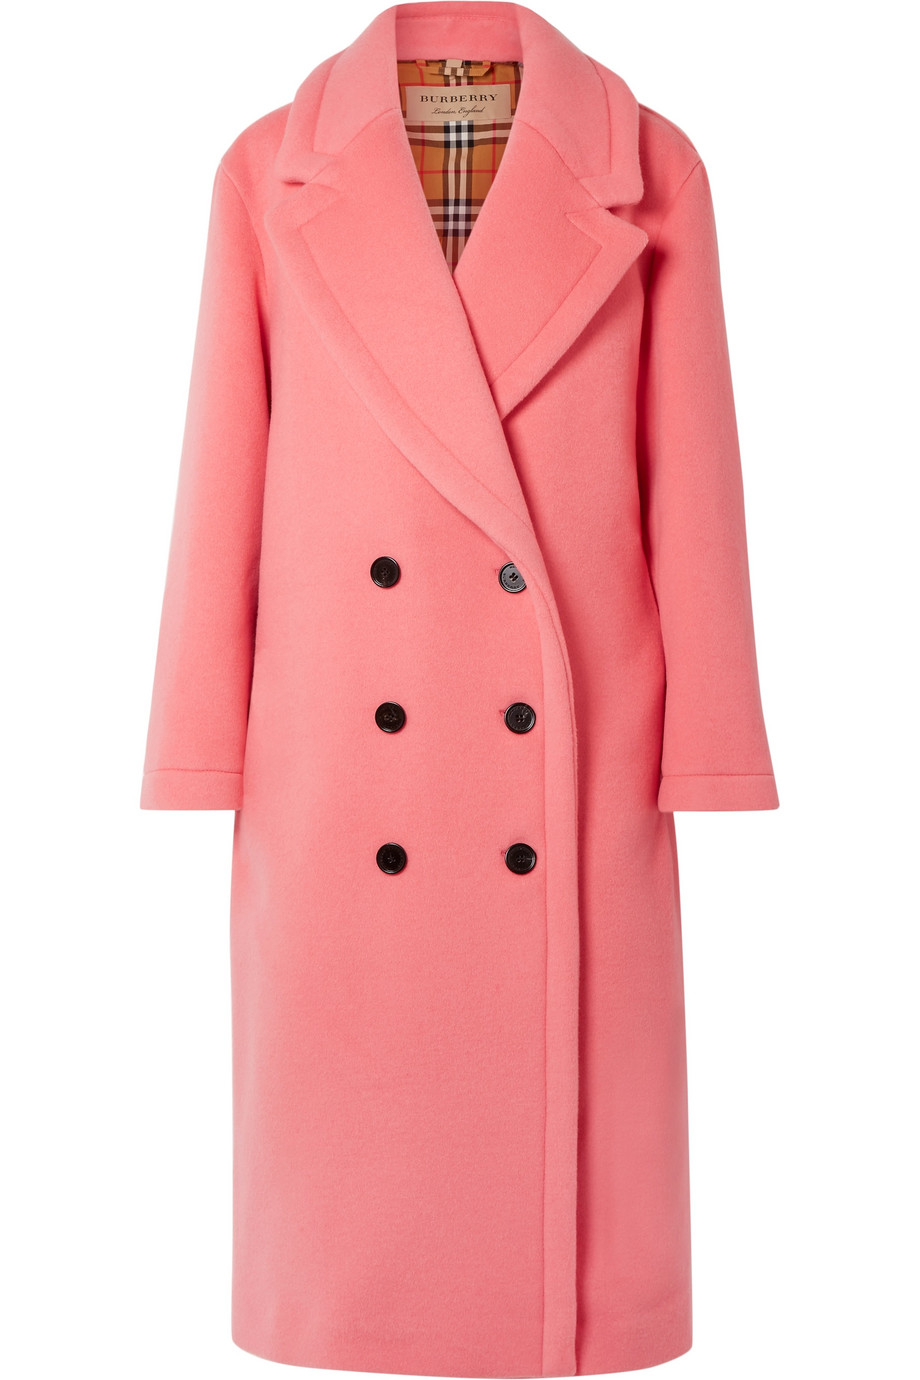 Burberry Oversized double-breasted wool and cashmere-blend coat